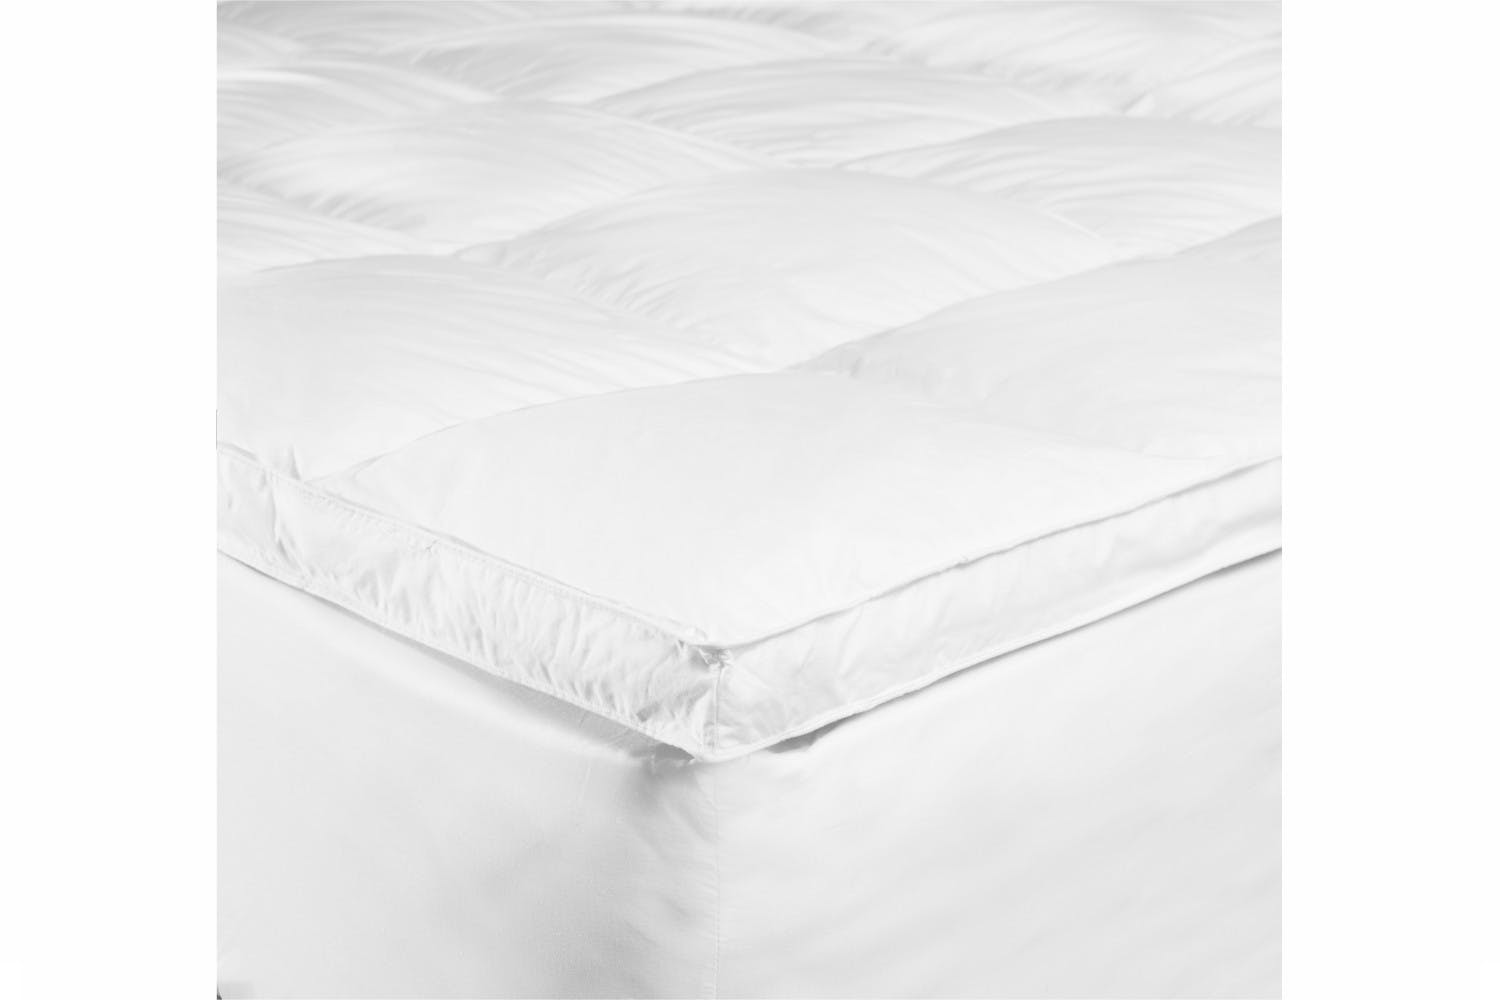 The Linen Room White Goose Feather & Down Topper | Super King